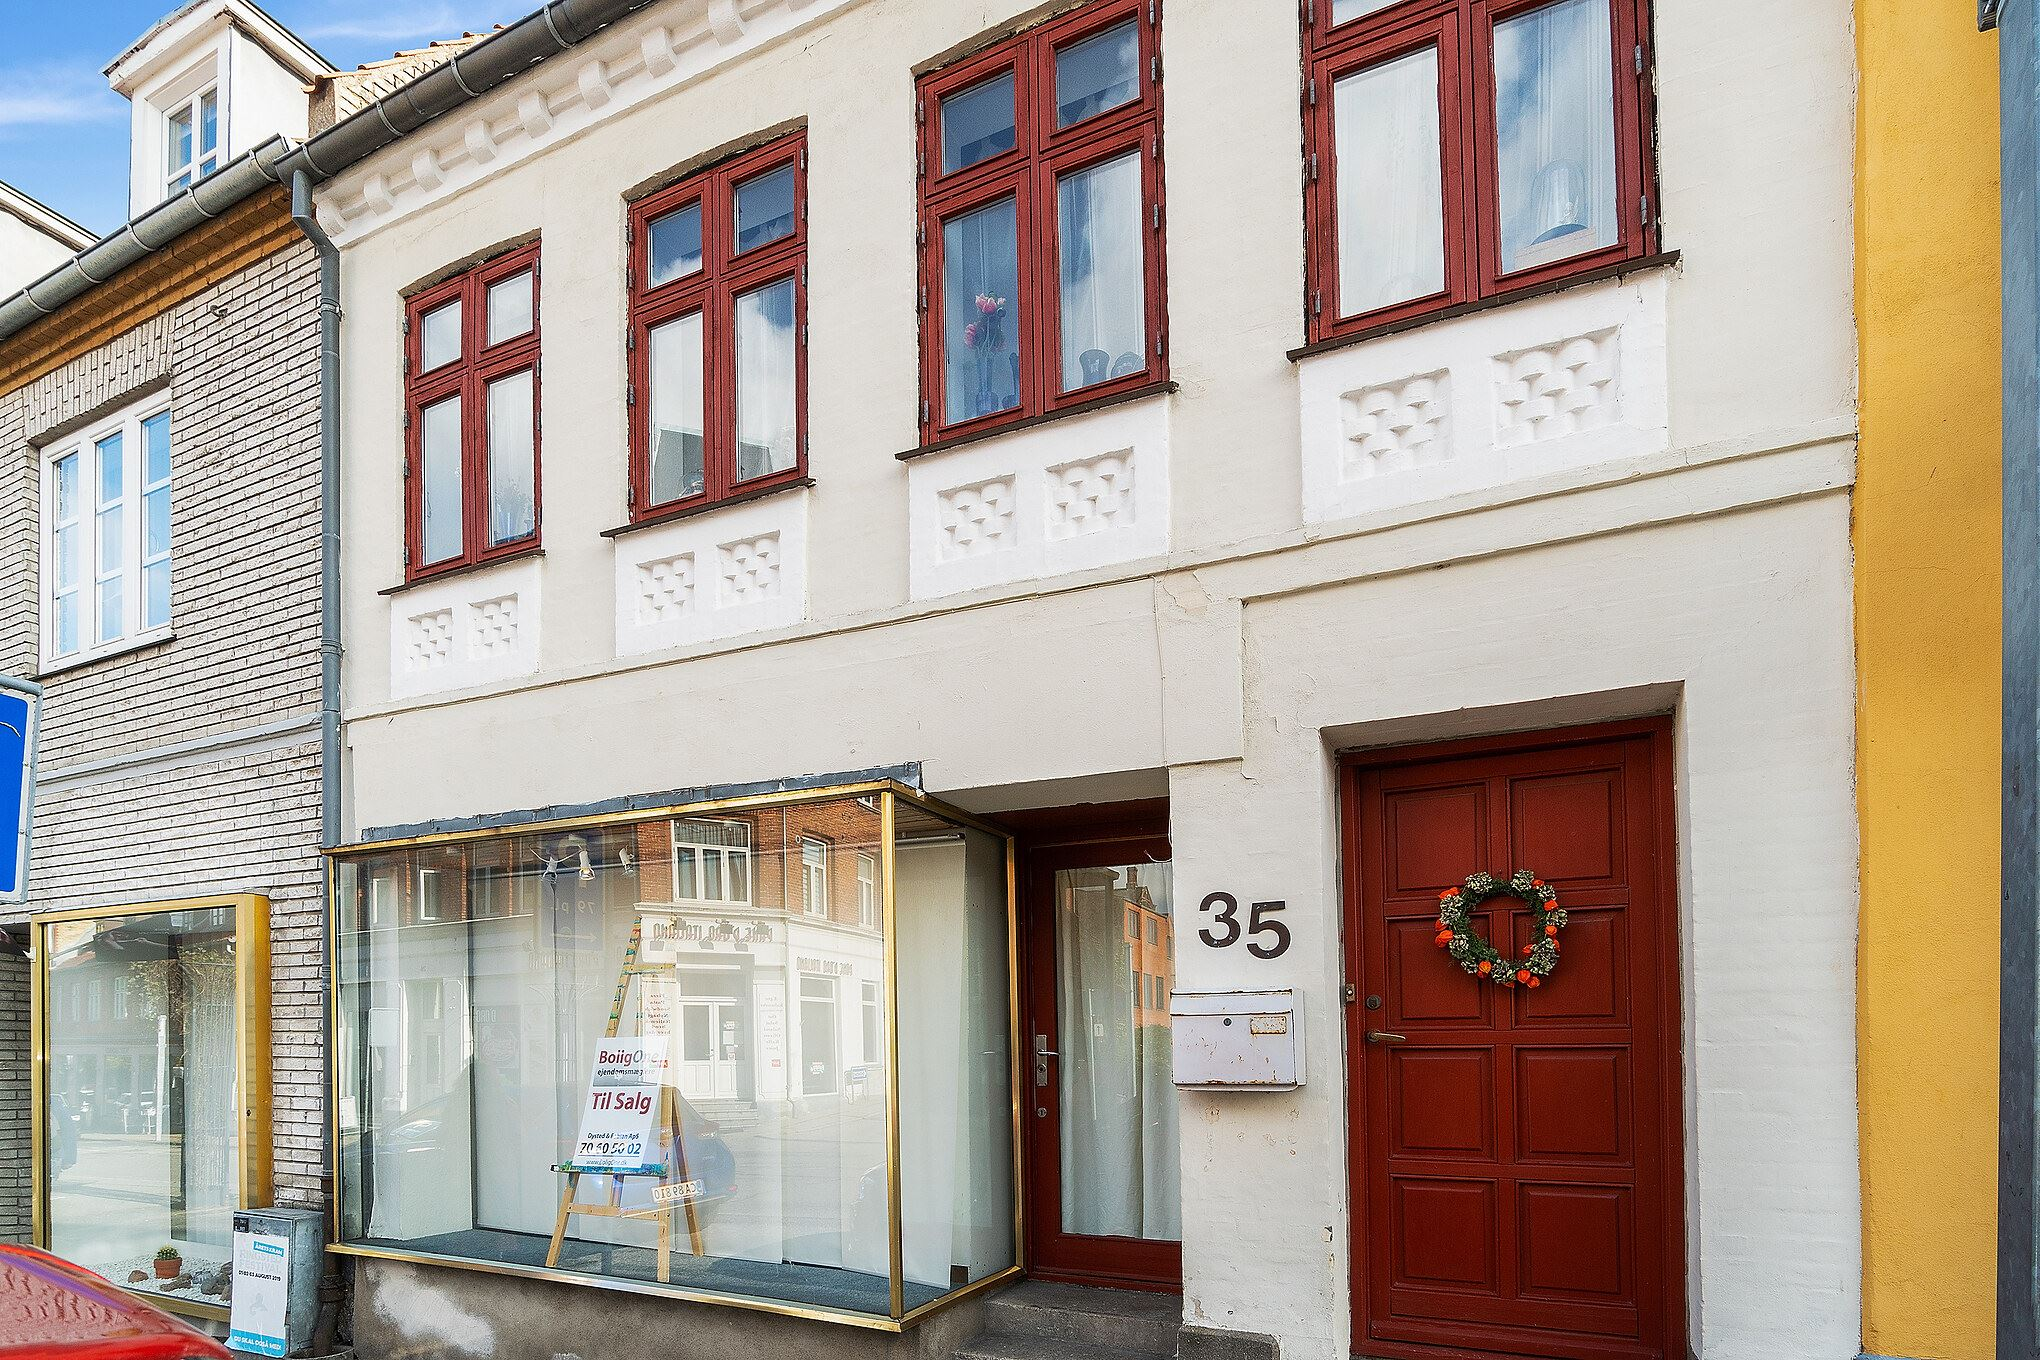 Sct Hansgade 35, 4100 Ringsted